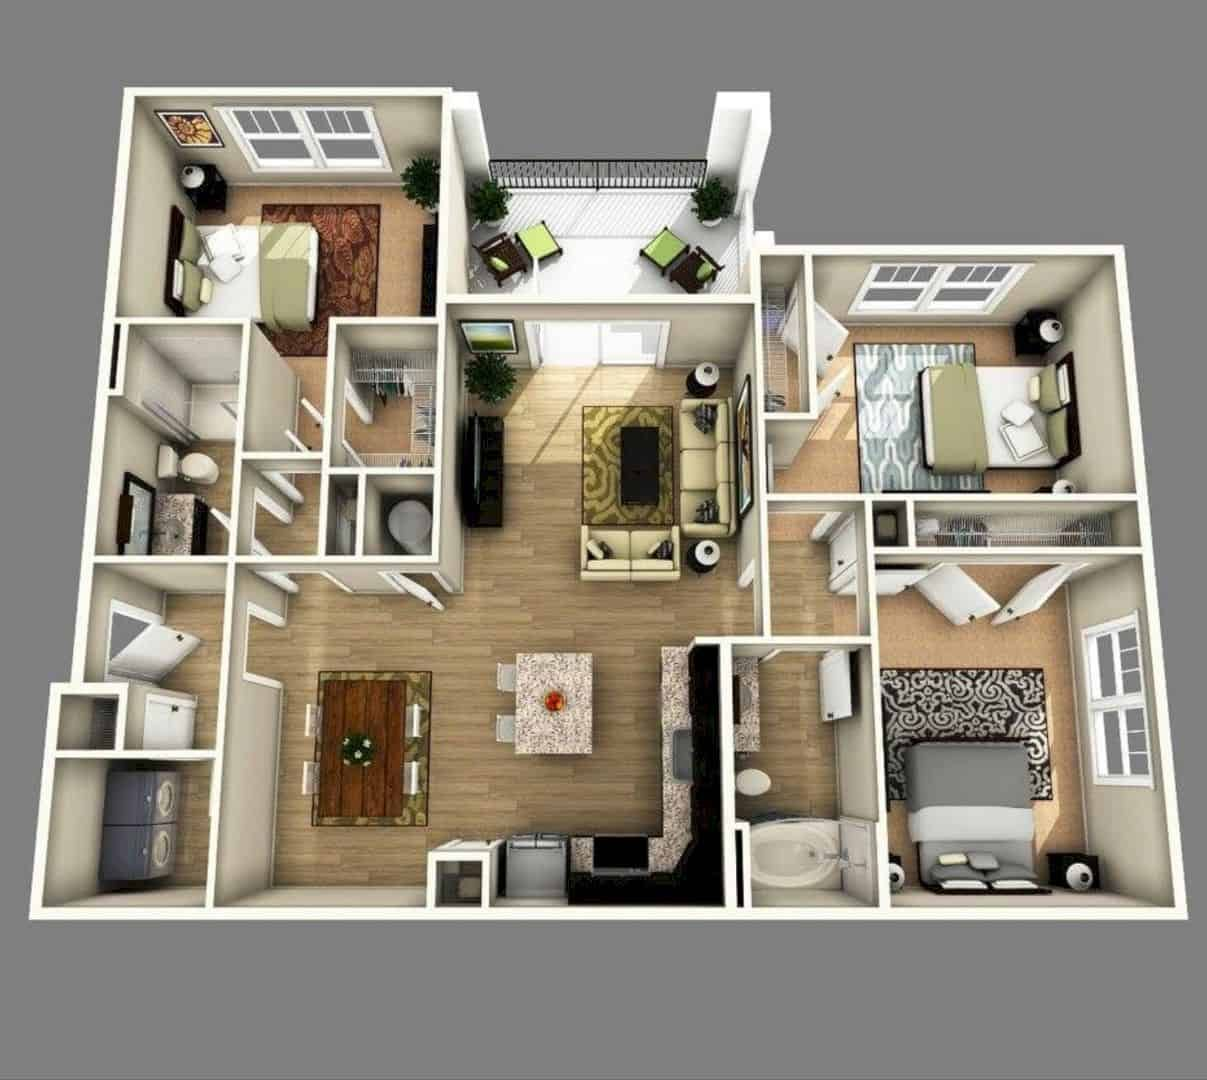 Why Do We Need 3d House Plan Before Starting The Project In 2020 Apartment Floor Plans 3d House Plans House Plans